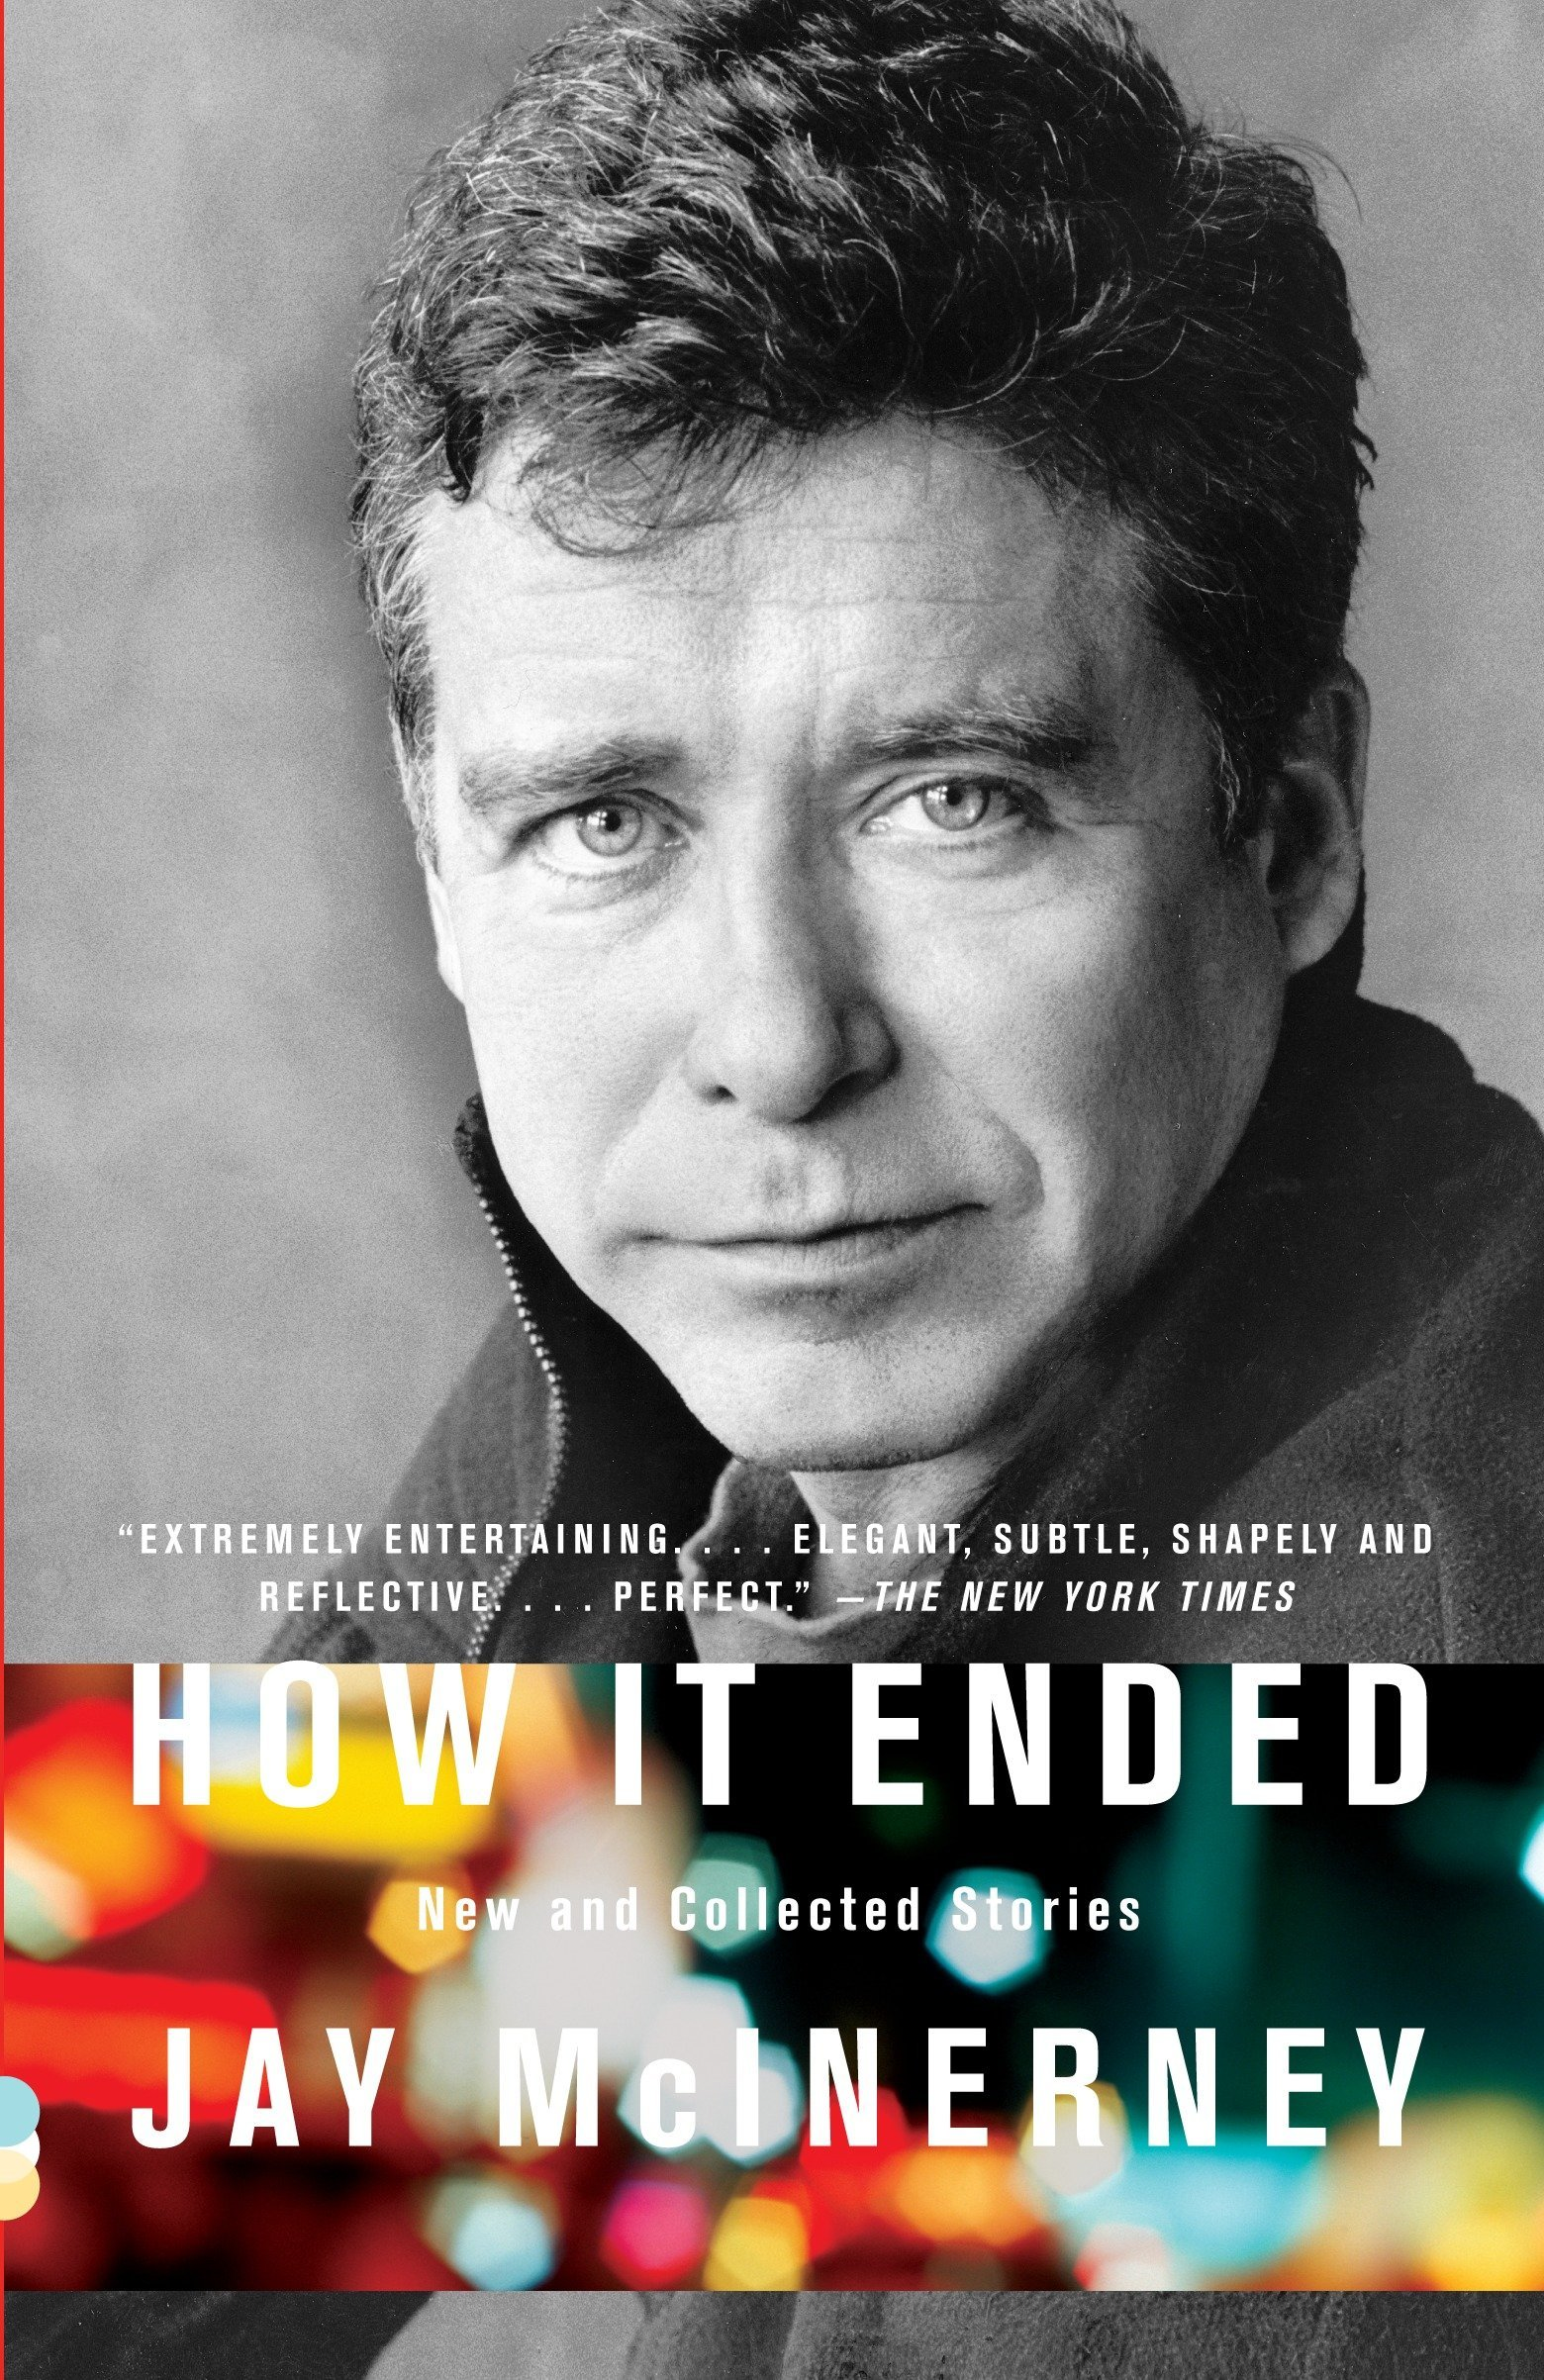 How It Ended: New and Collected Stories (Vintage Contemporaries) ebook